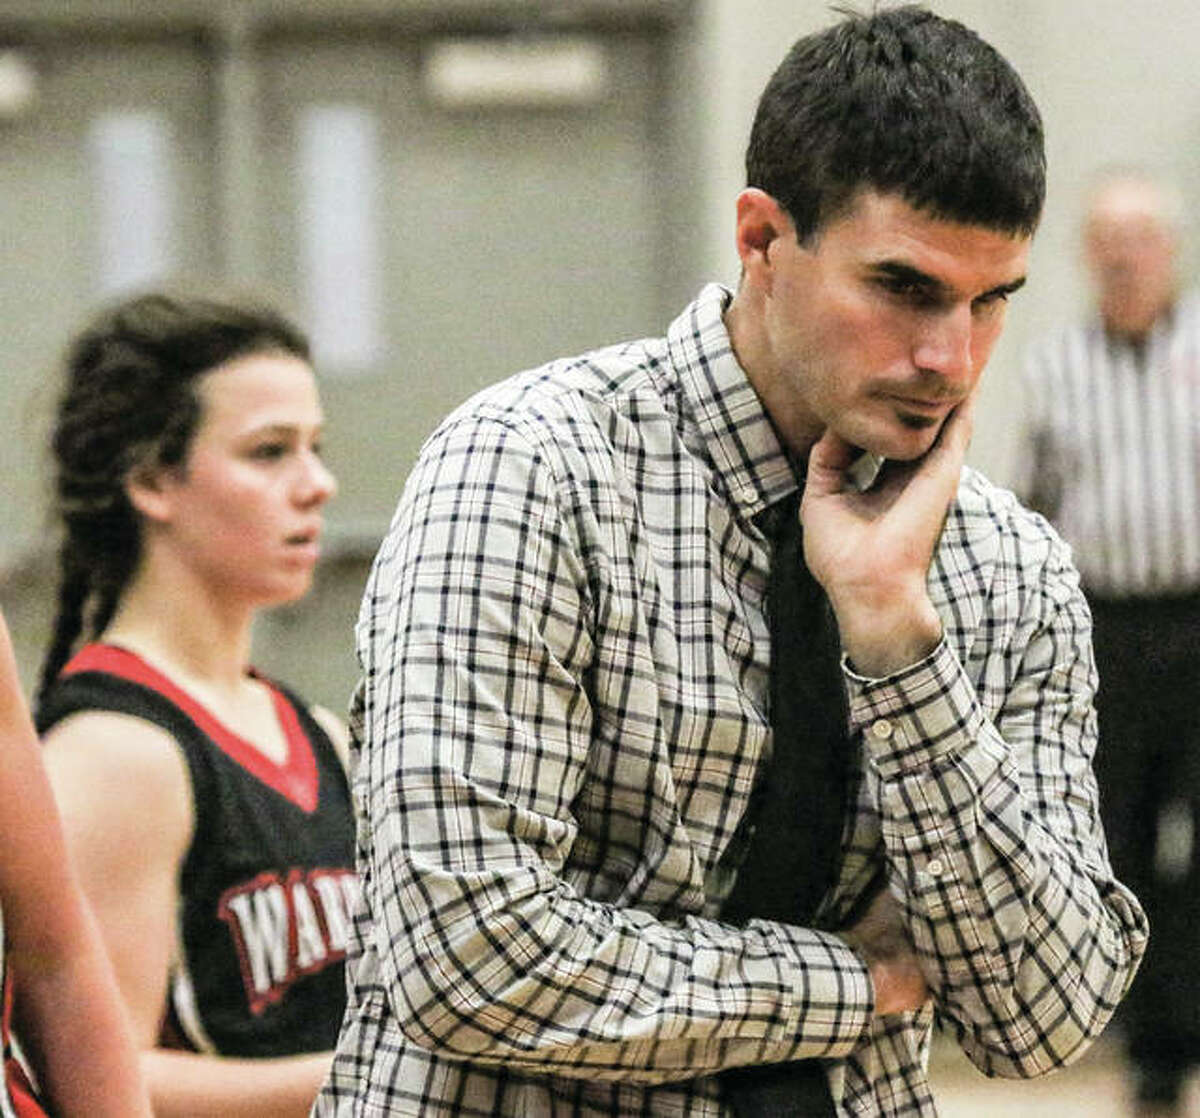 Calhoun coach Mark Hillen considers his options during a break in play at last week's Alton Tournament. The Warriors opened at home Tuesday and defeated Southwestern to give Hillen his first win as Warriors coach at Ringhausen Gym.